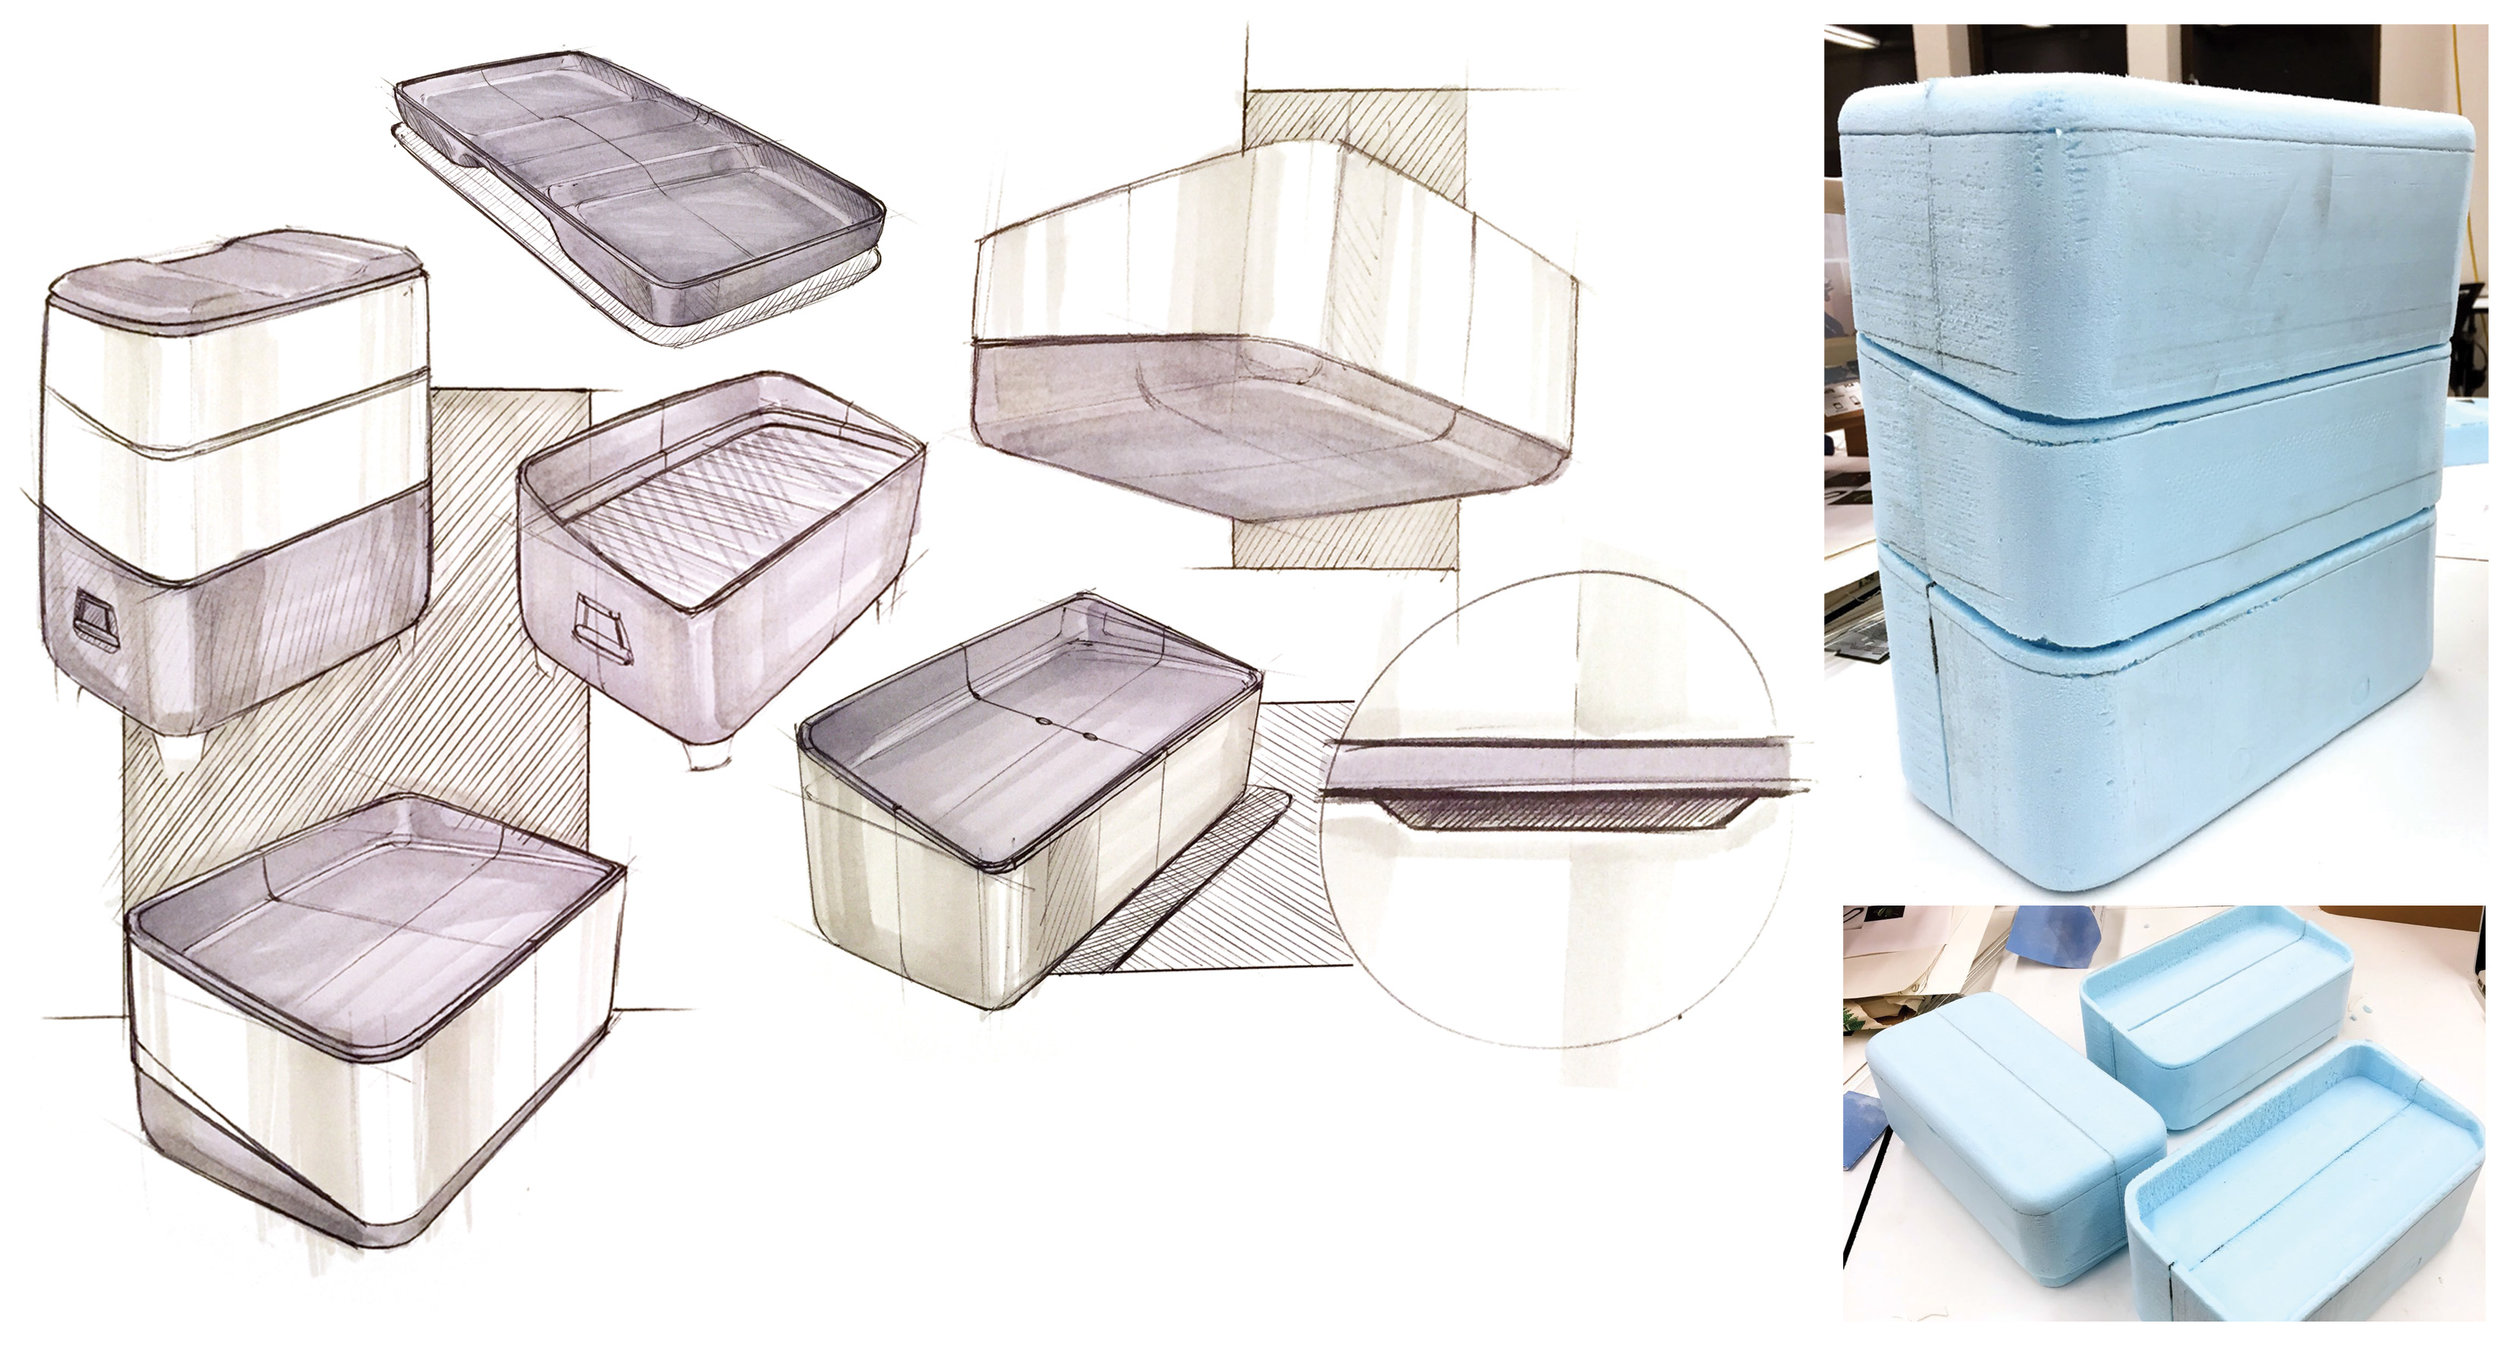 I then came up with a portable grill design to cook on site, along with two containers that stack on top that could easily fit in a backpack or tote for the everyday urban commuter.